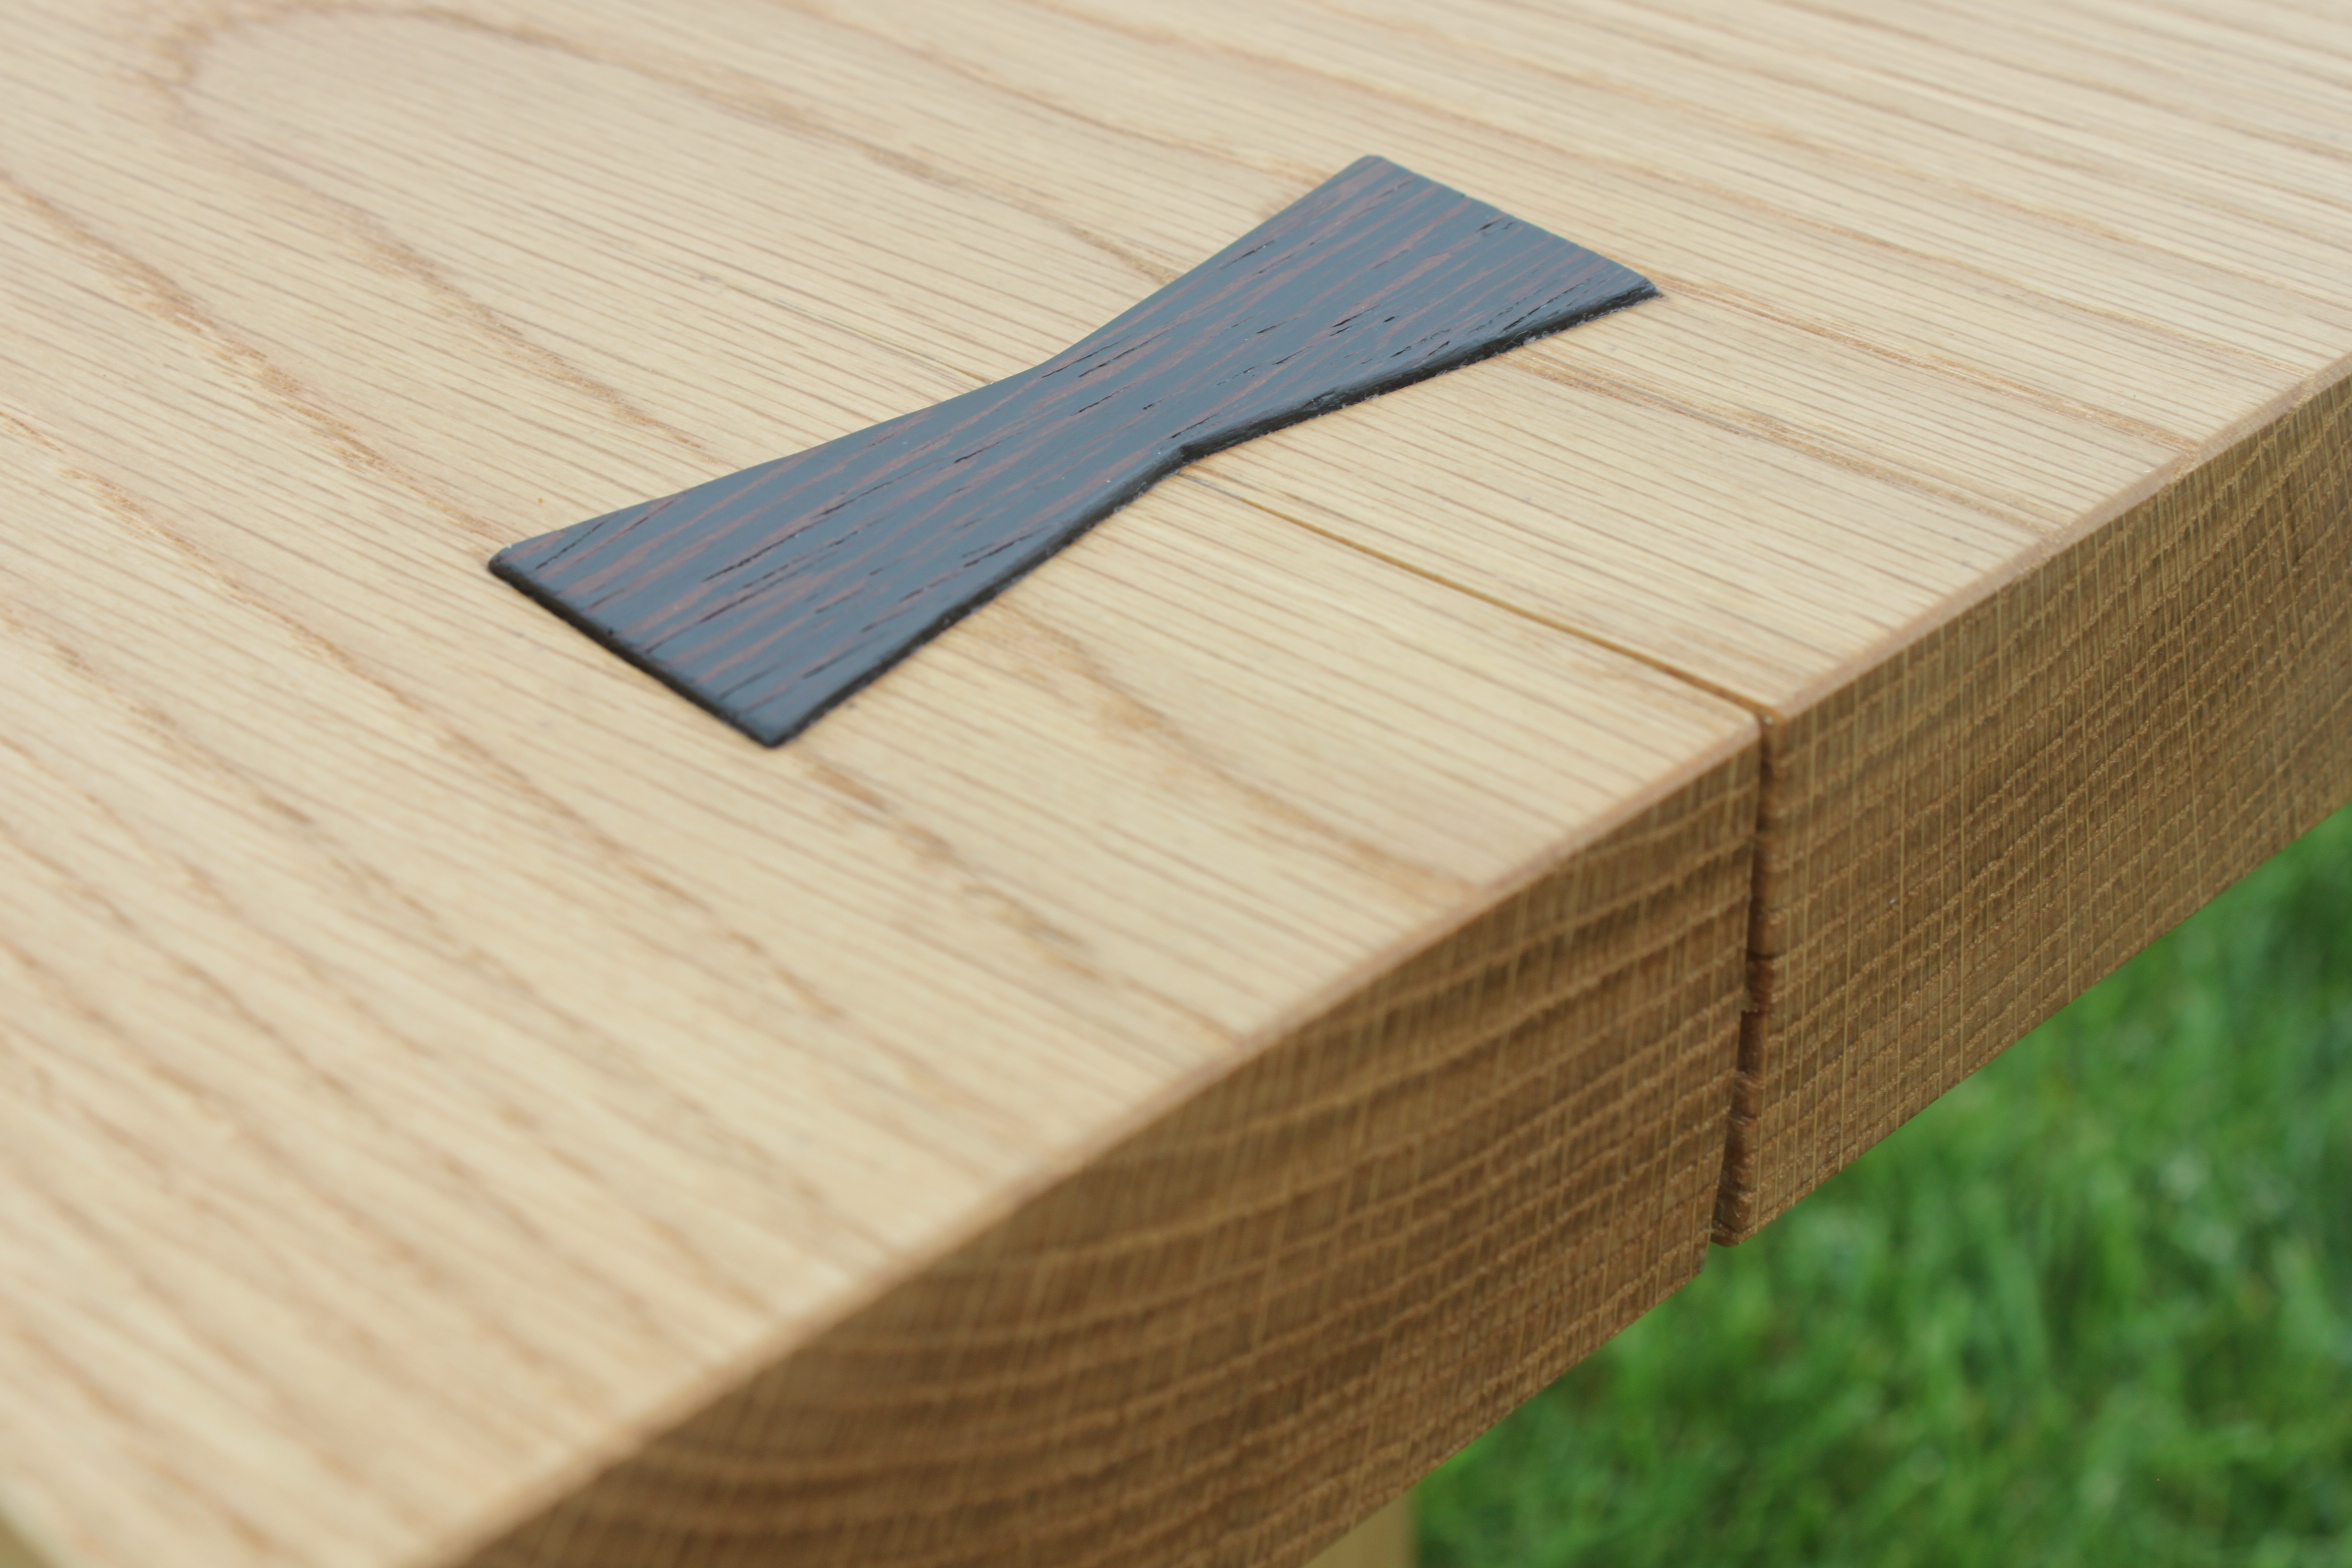 small bench detail.JPG